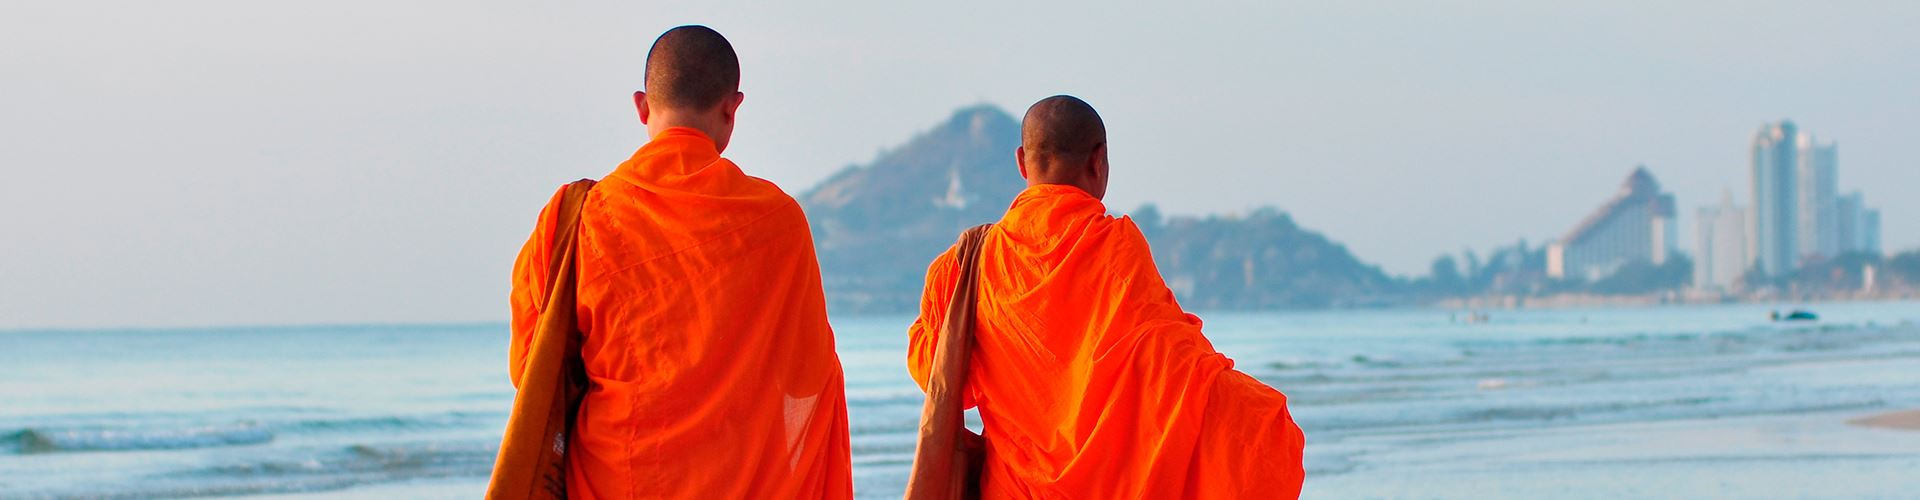 2-monks-on-the-beach,Hua-Hin-Thailand.jpg